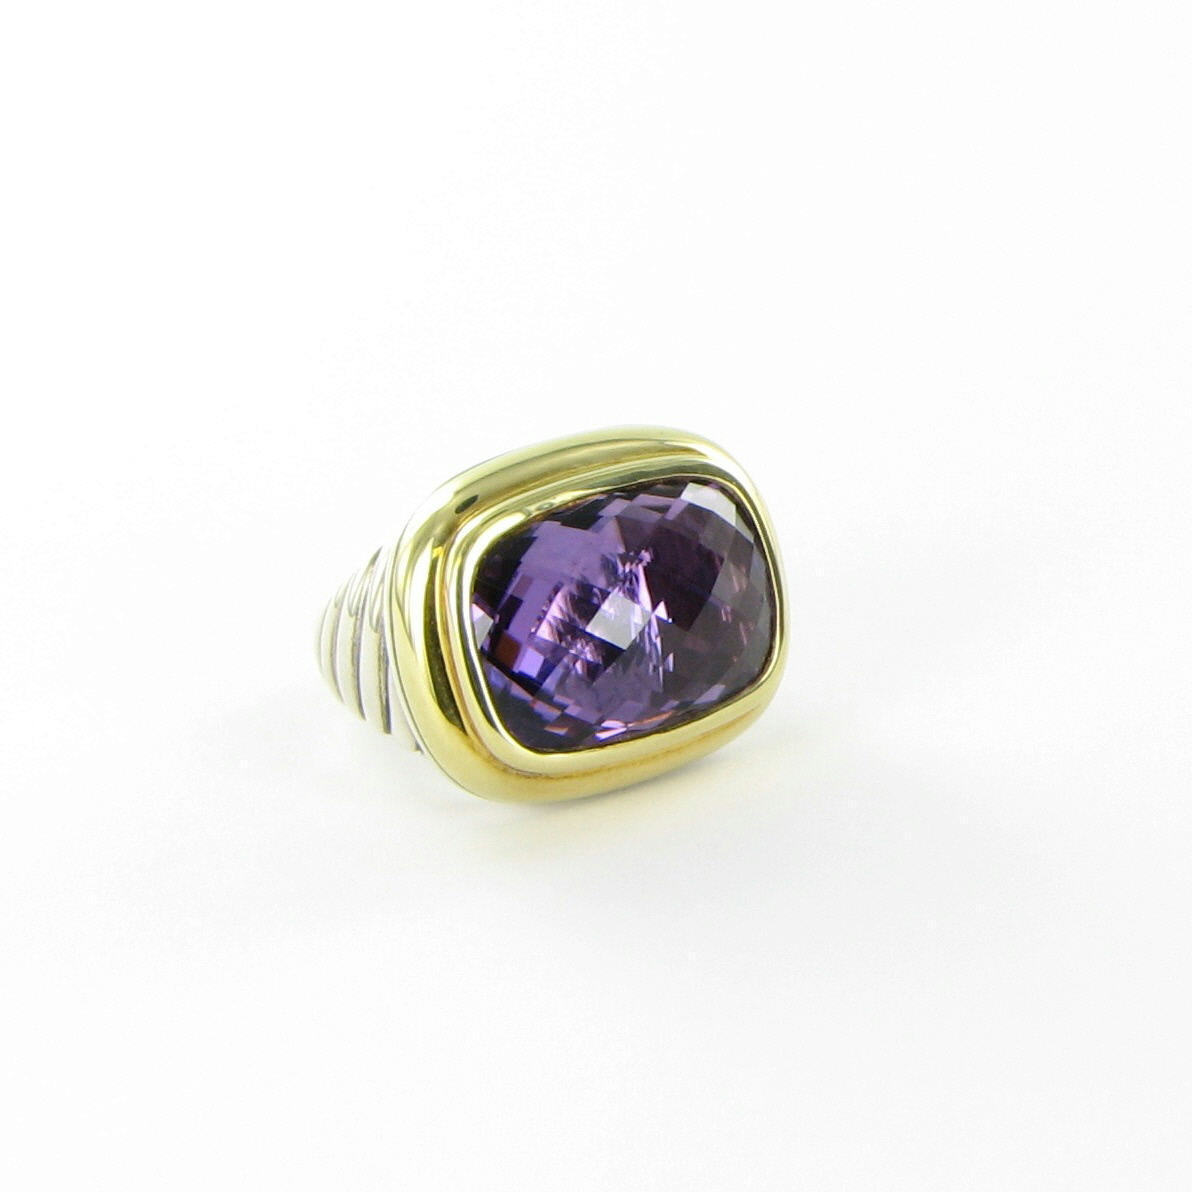 David Yurman Waverly Ring 18mm Amethyst 18K Yellow Gold Bezel Sterling Sz 6 New